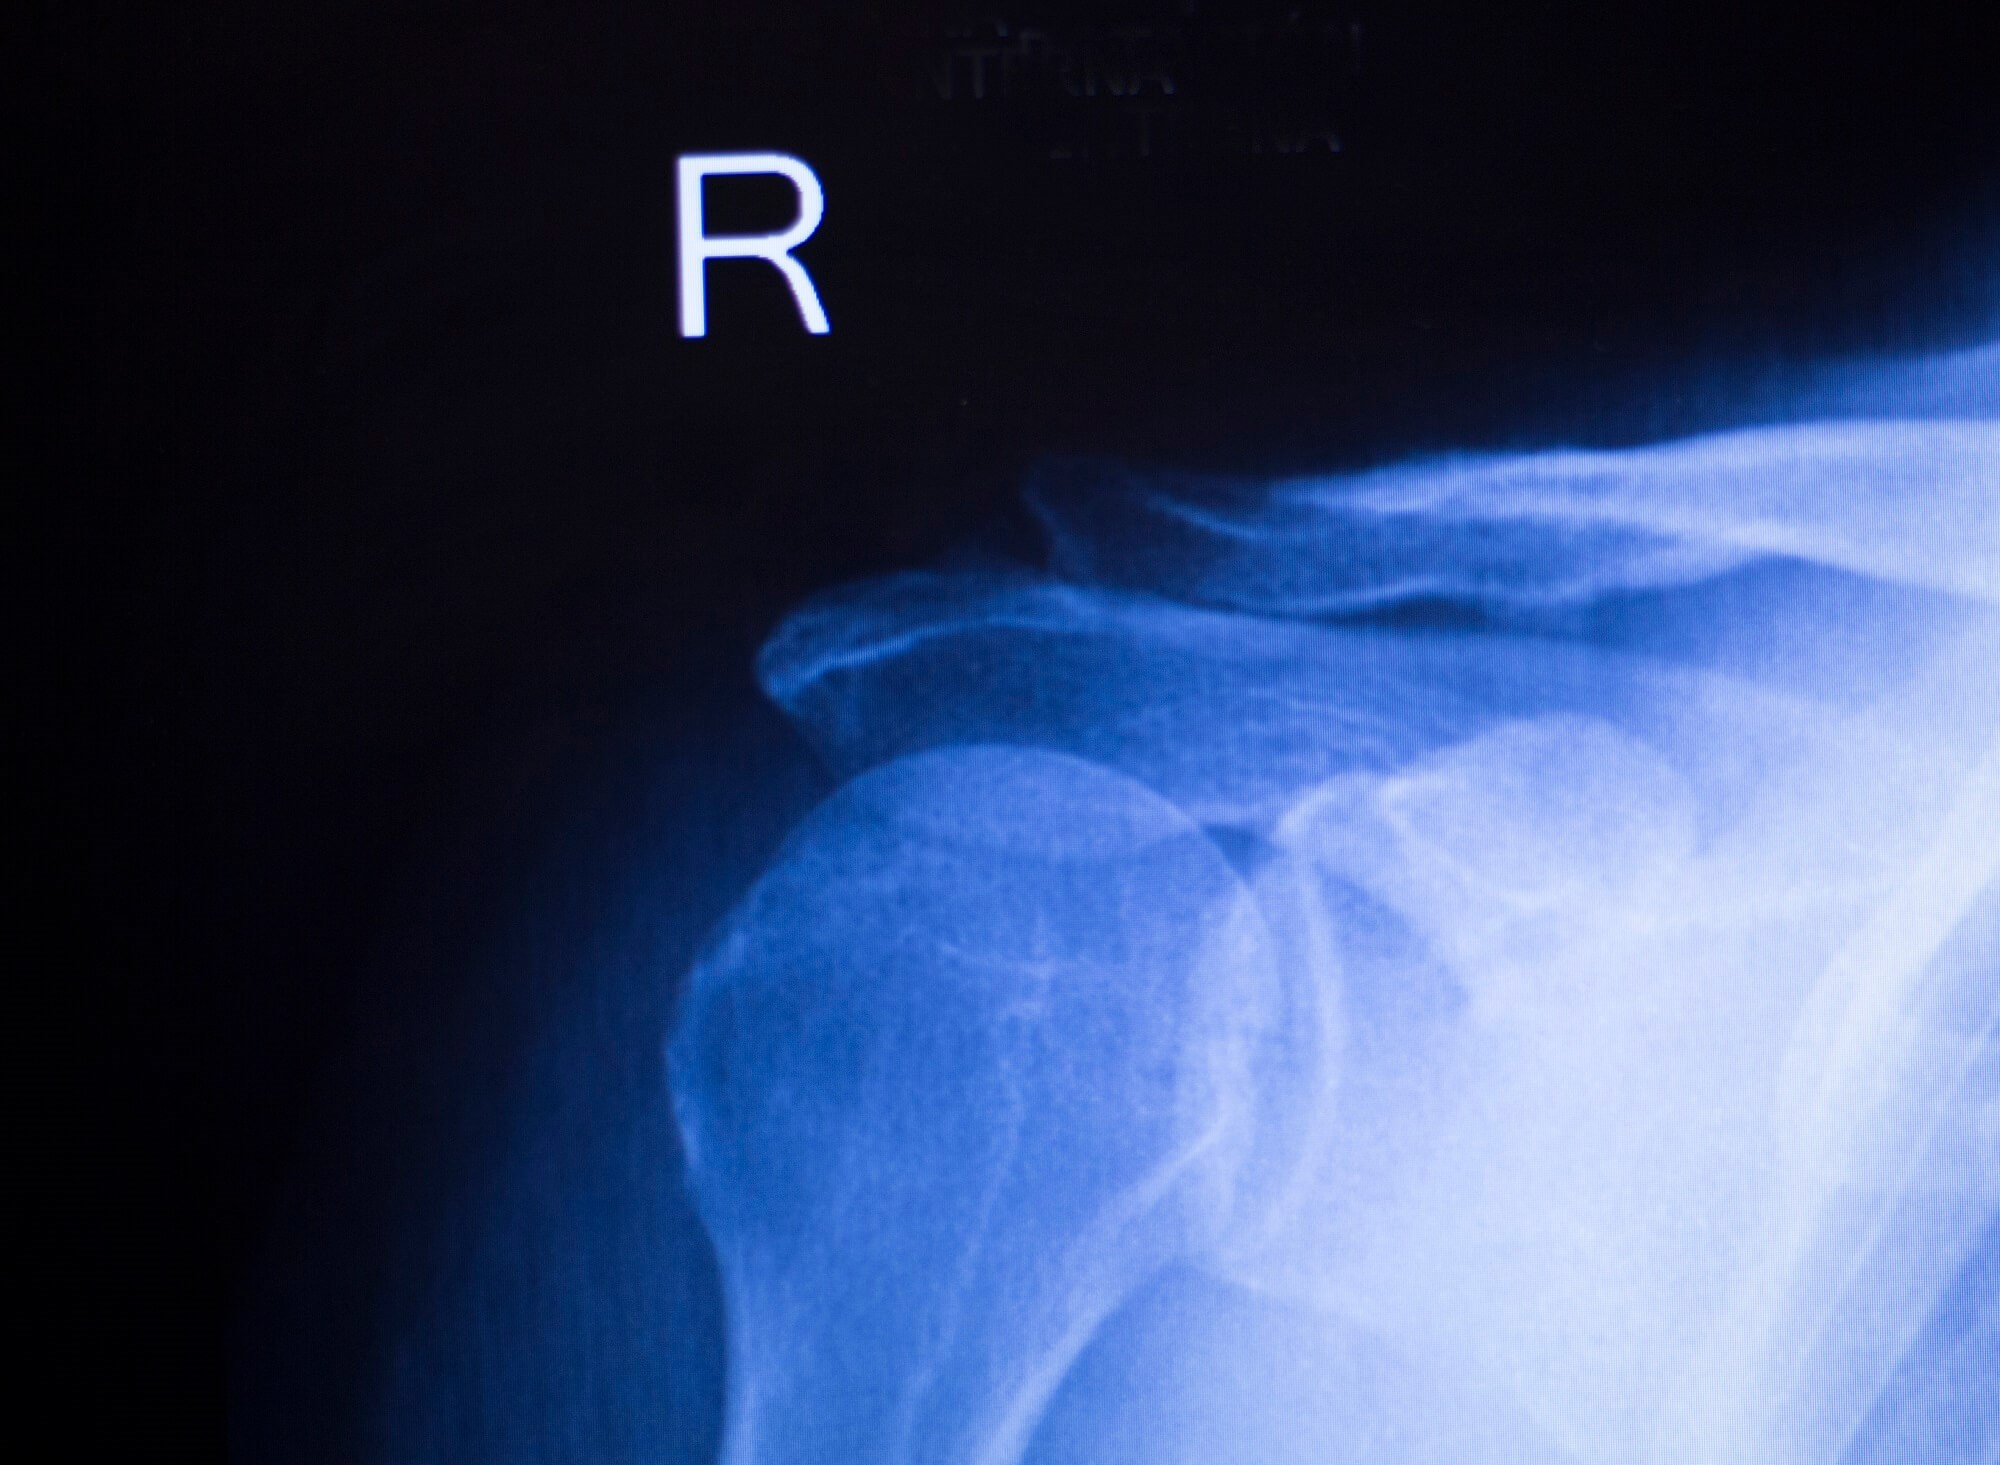 The incidence rate of upper limb joint replacements has decreased since 2002 among patients with rheumatoid arthritis.